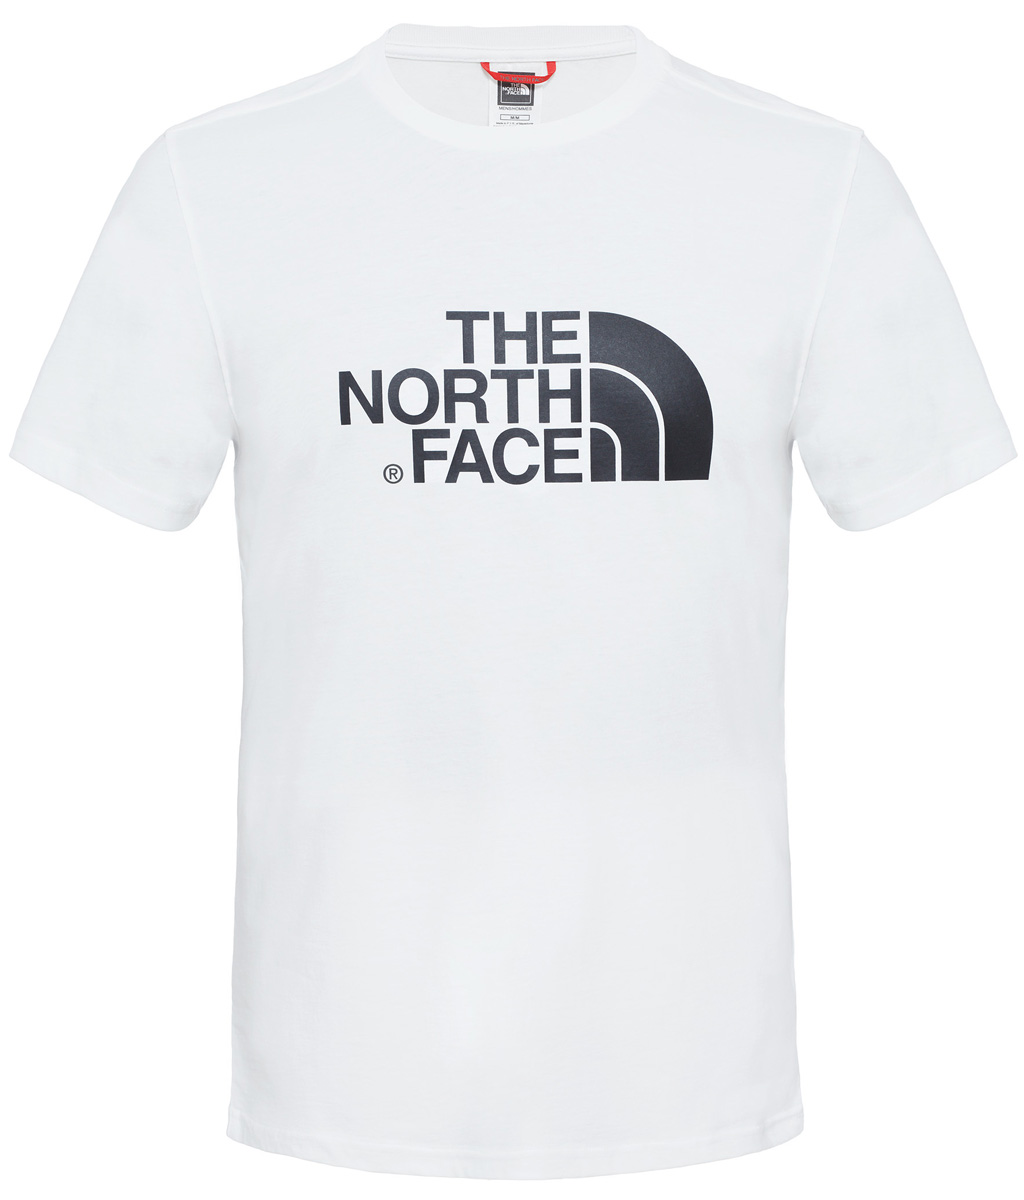 Футболка мужская The North Face M S/S Easy Tee, цвет: белый. T92TX3FN4. Размер XL (54) футболка the north face the north face youth short sleeve easy tee детская